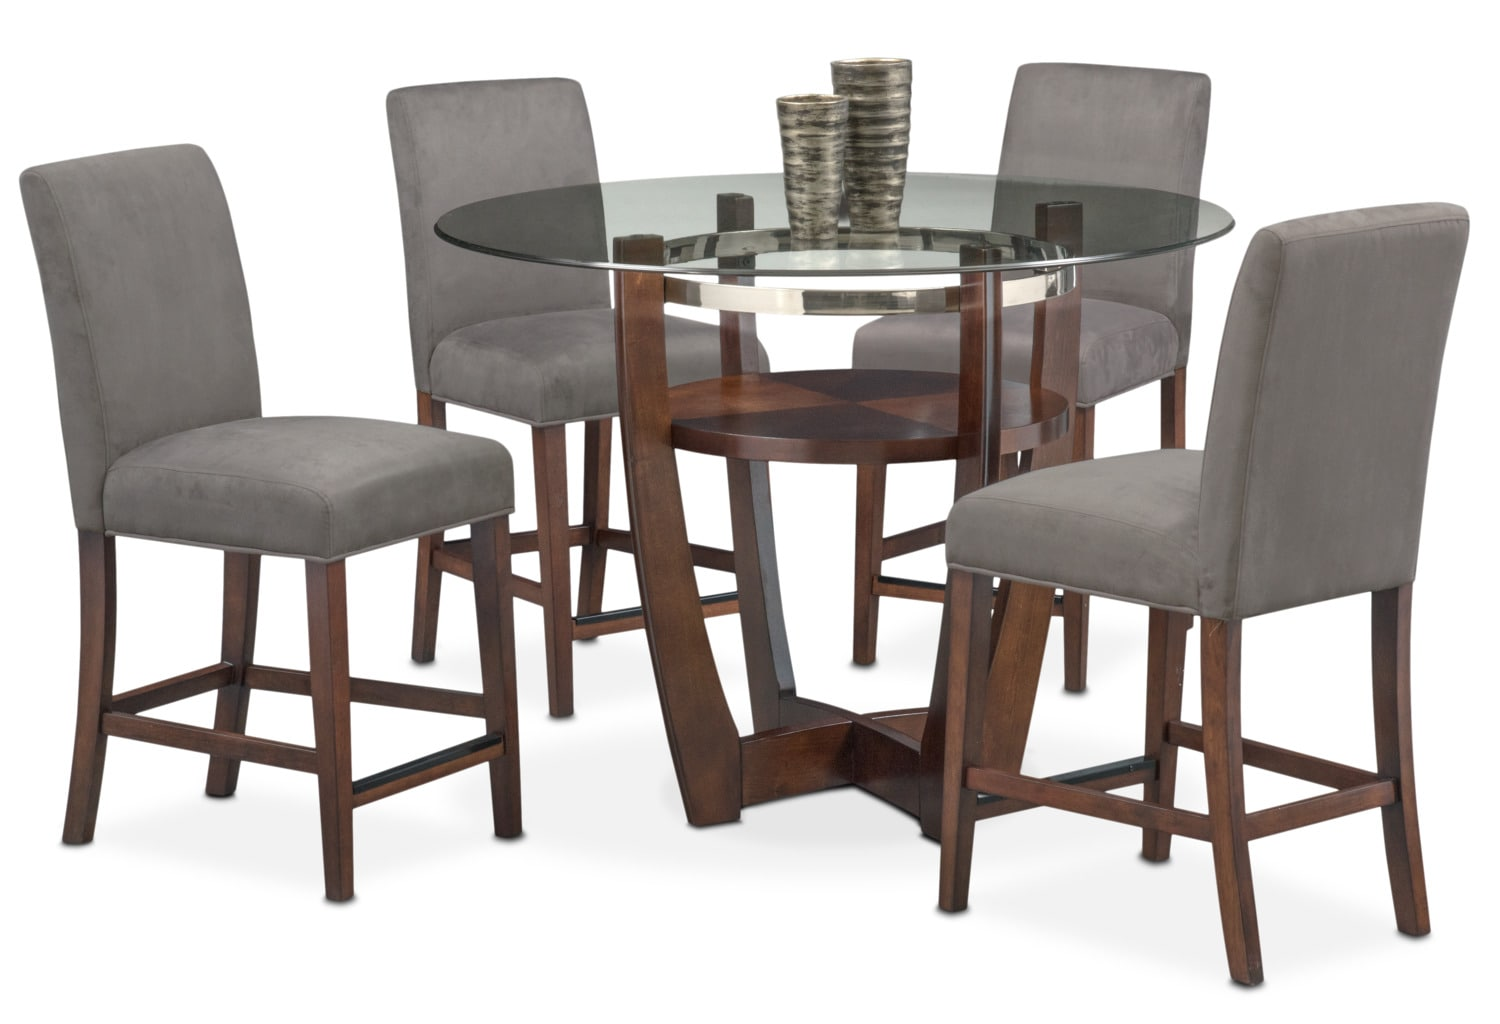 gray side chair chairs for tall man alcove counter height table and 4 value city click to change image